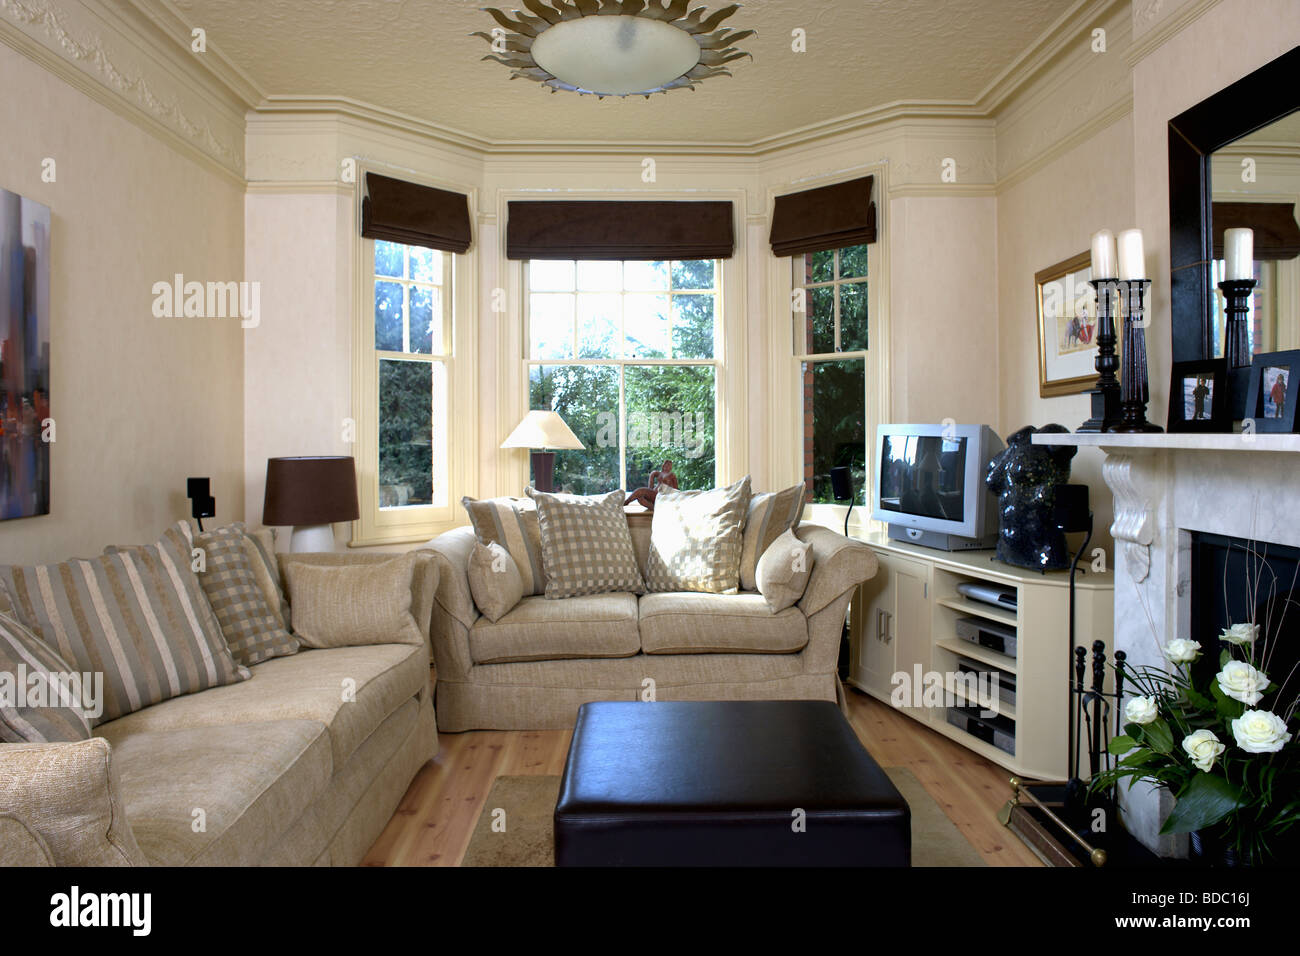 Fresh bay window couch in front at76 roccommunity - Living room with bay window ...